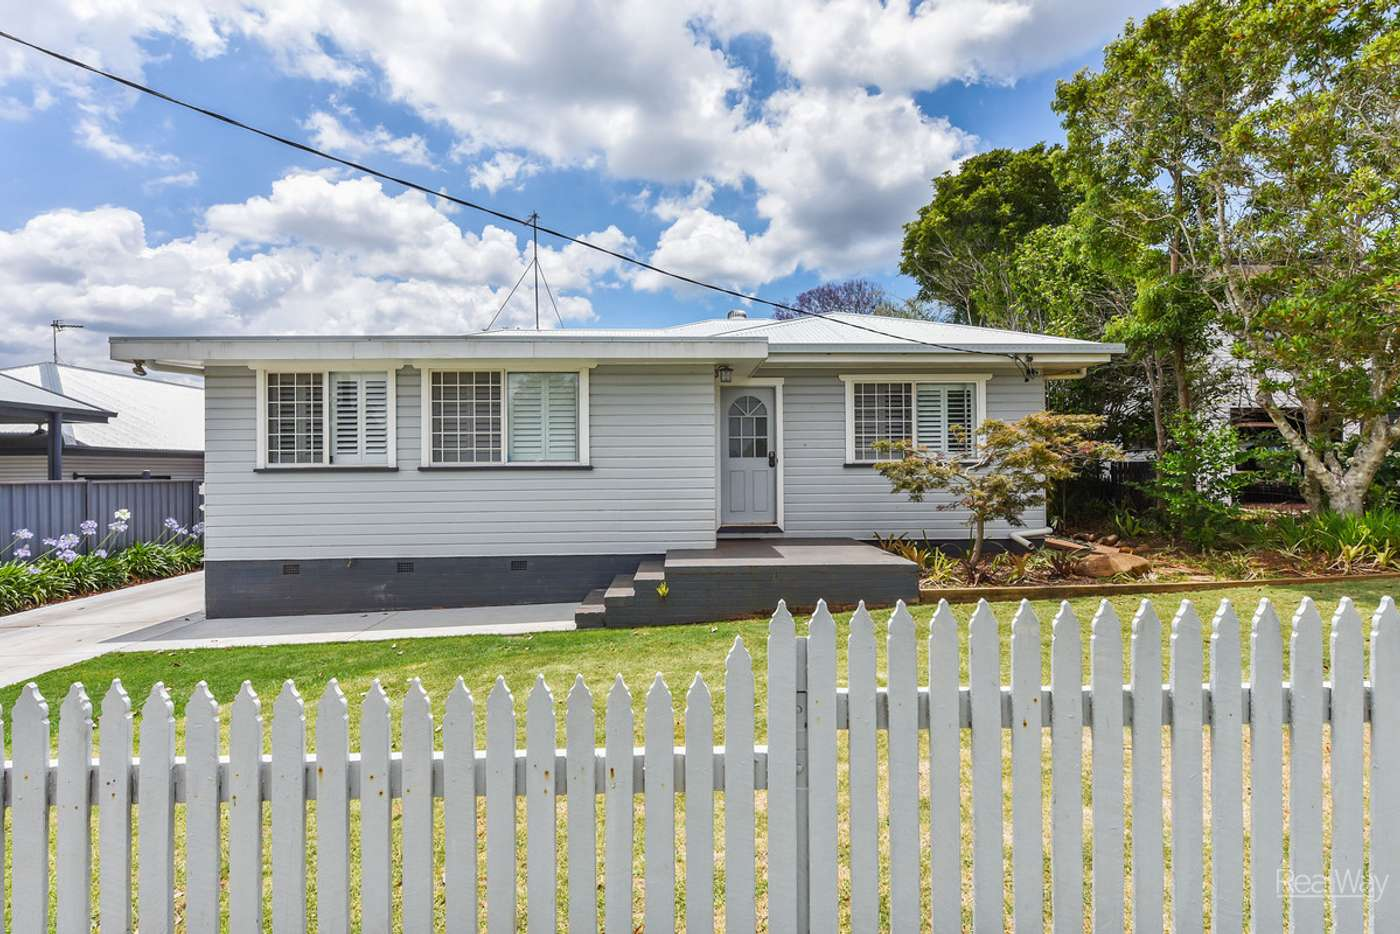 Main view of Homely house listing, 13 Mallon Street, Rangeville QLD 4350